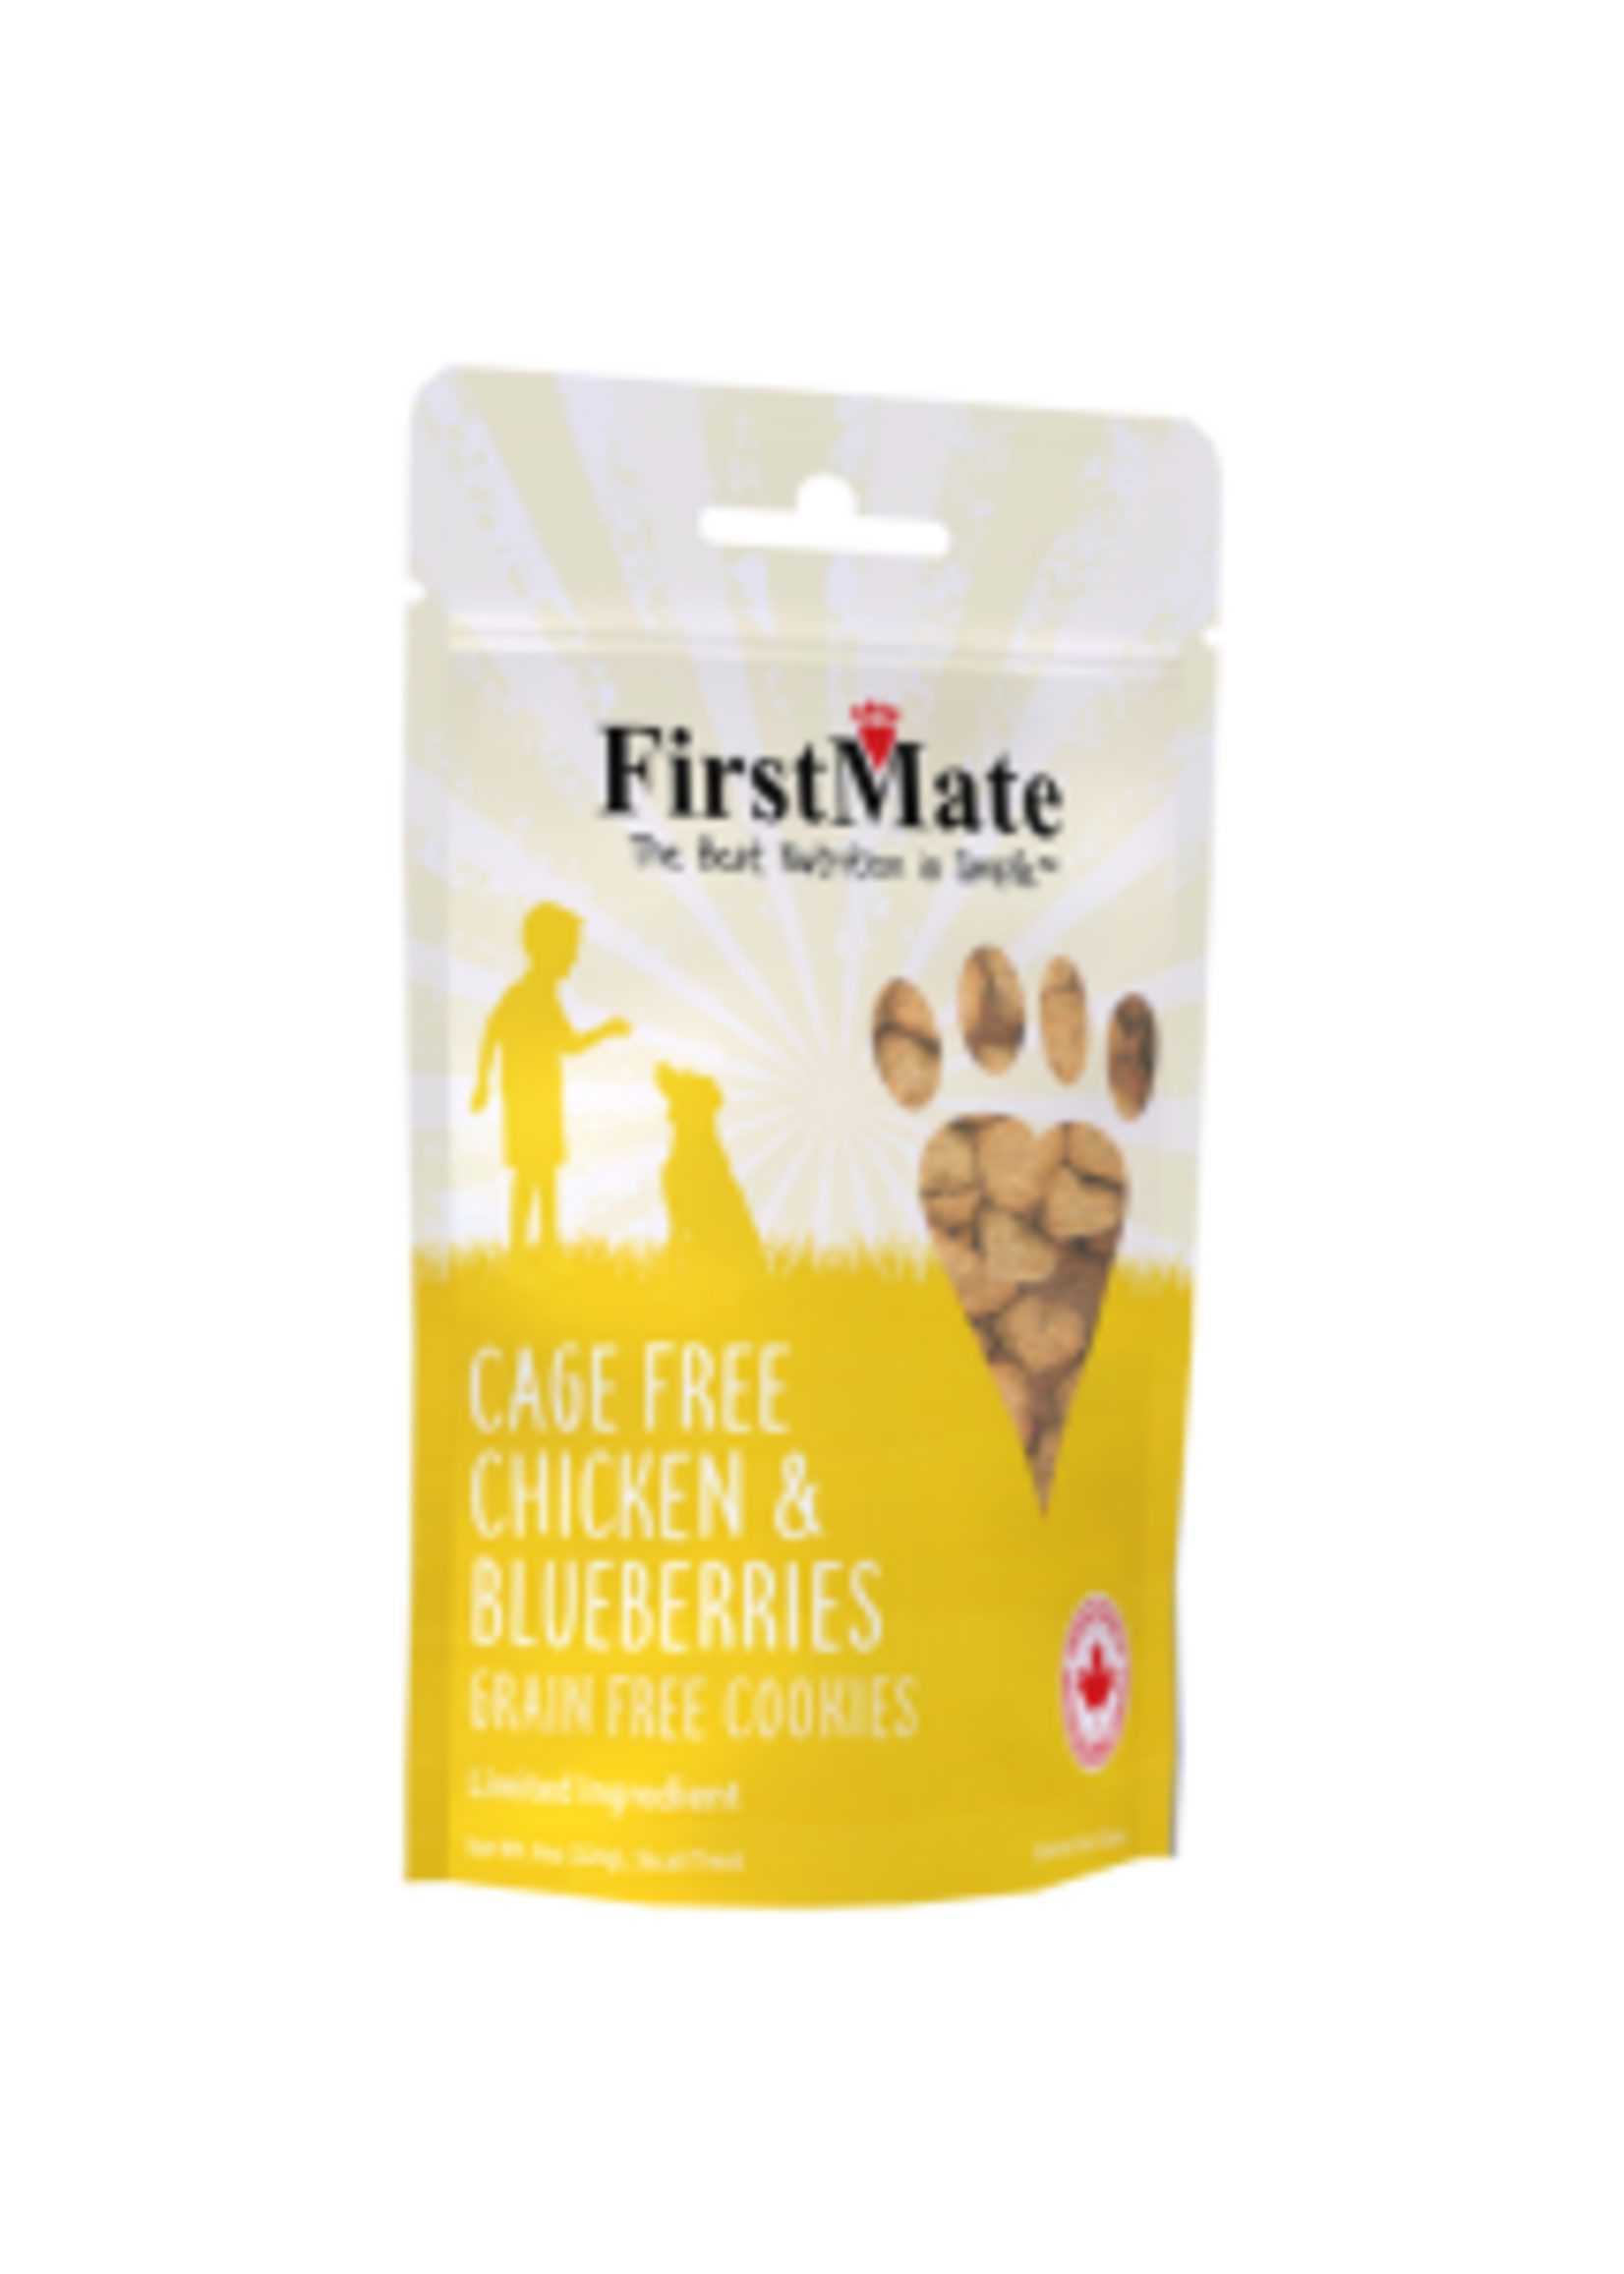 First Mate First Mate Chicken With Blueberries Biscuits 8oz